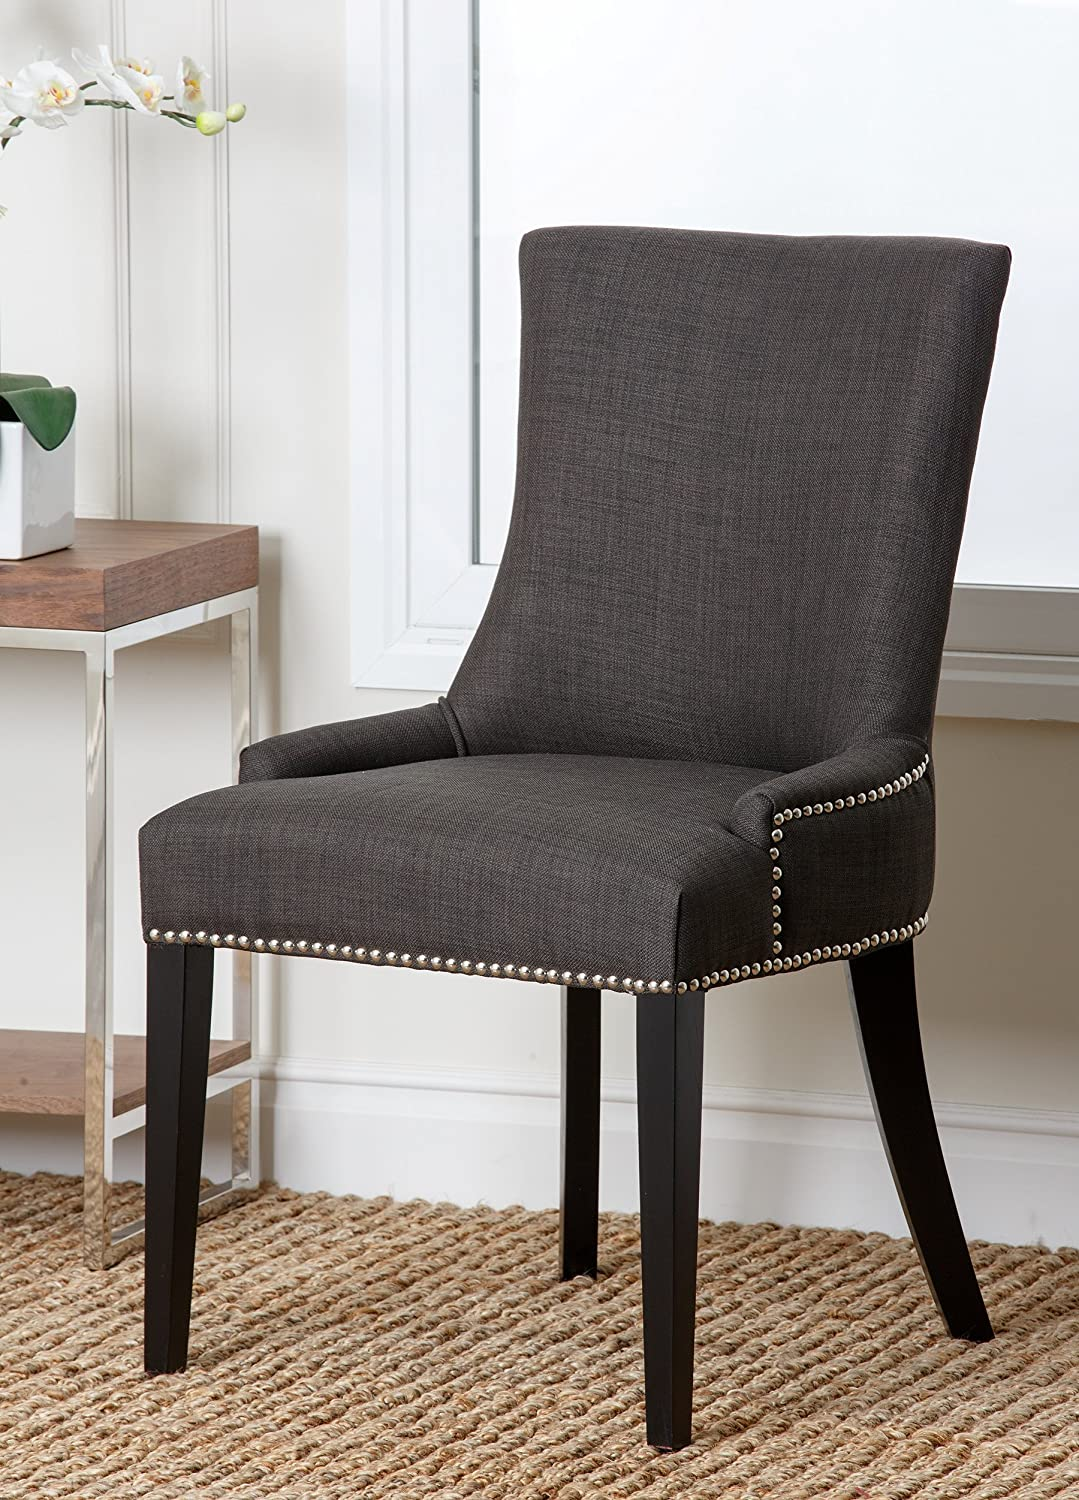 Amazon.com - Abbyson Annalise Fabric Nailhead Trim Dining Chair ...